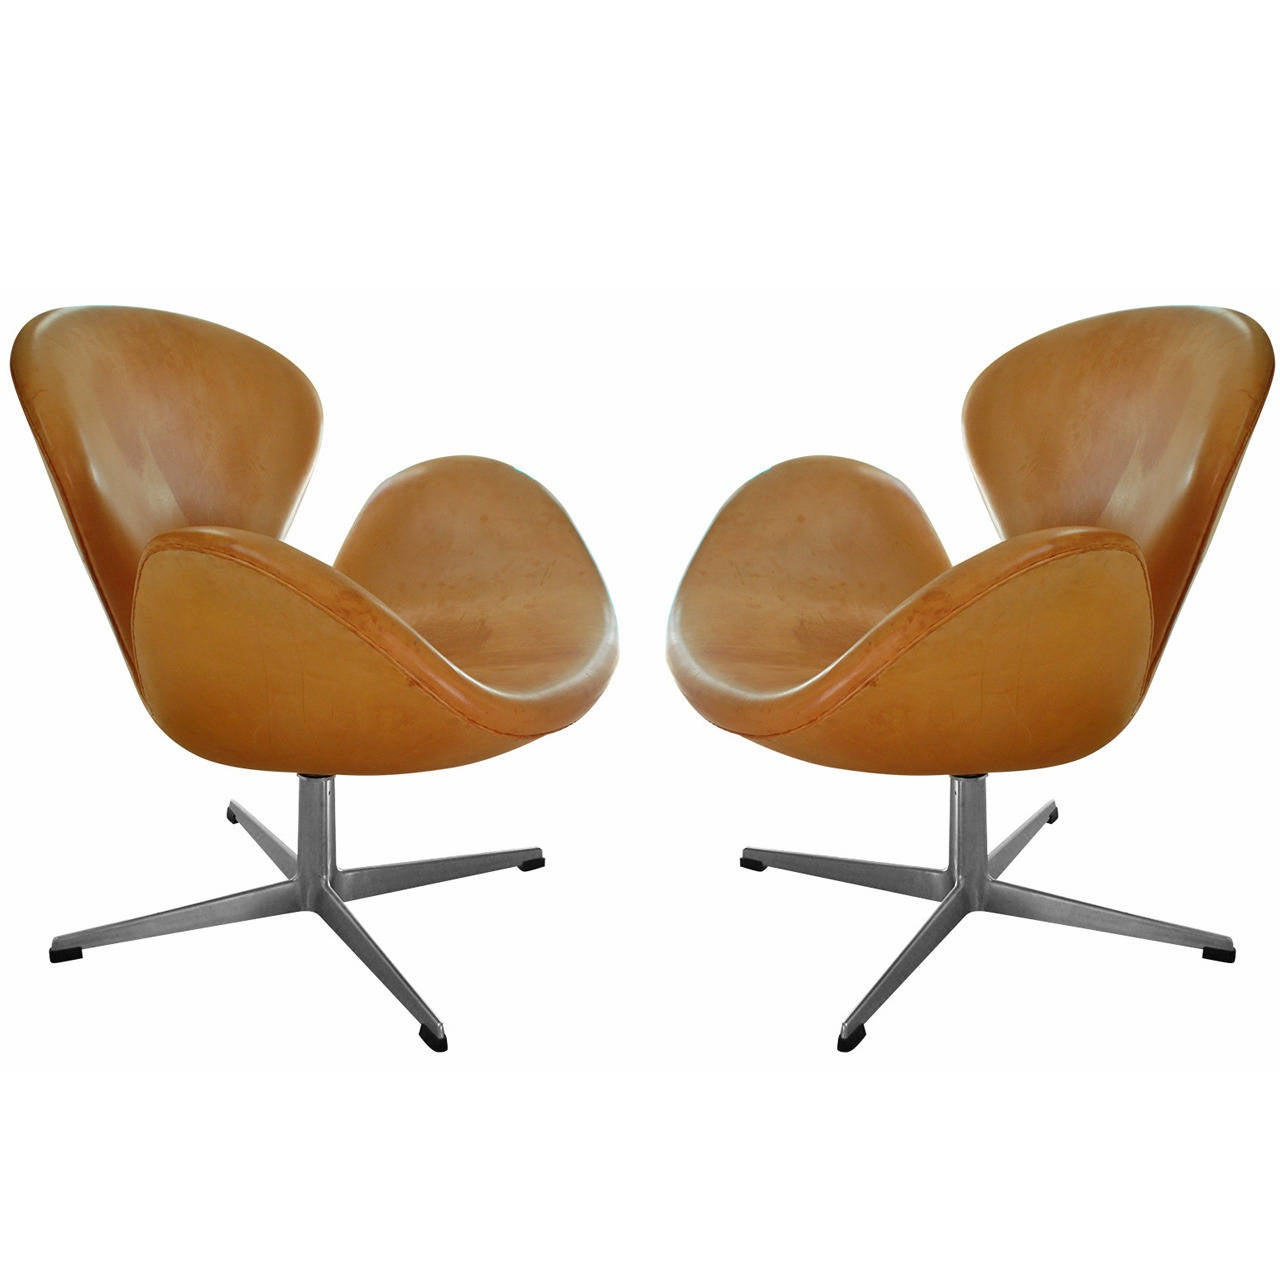 Rare Natural Leather Early Swan Chairs By Arne Jacobsen